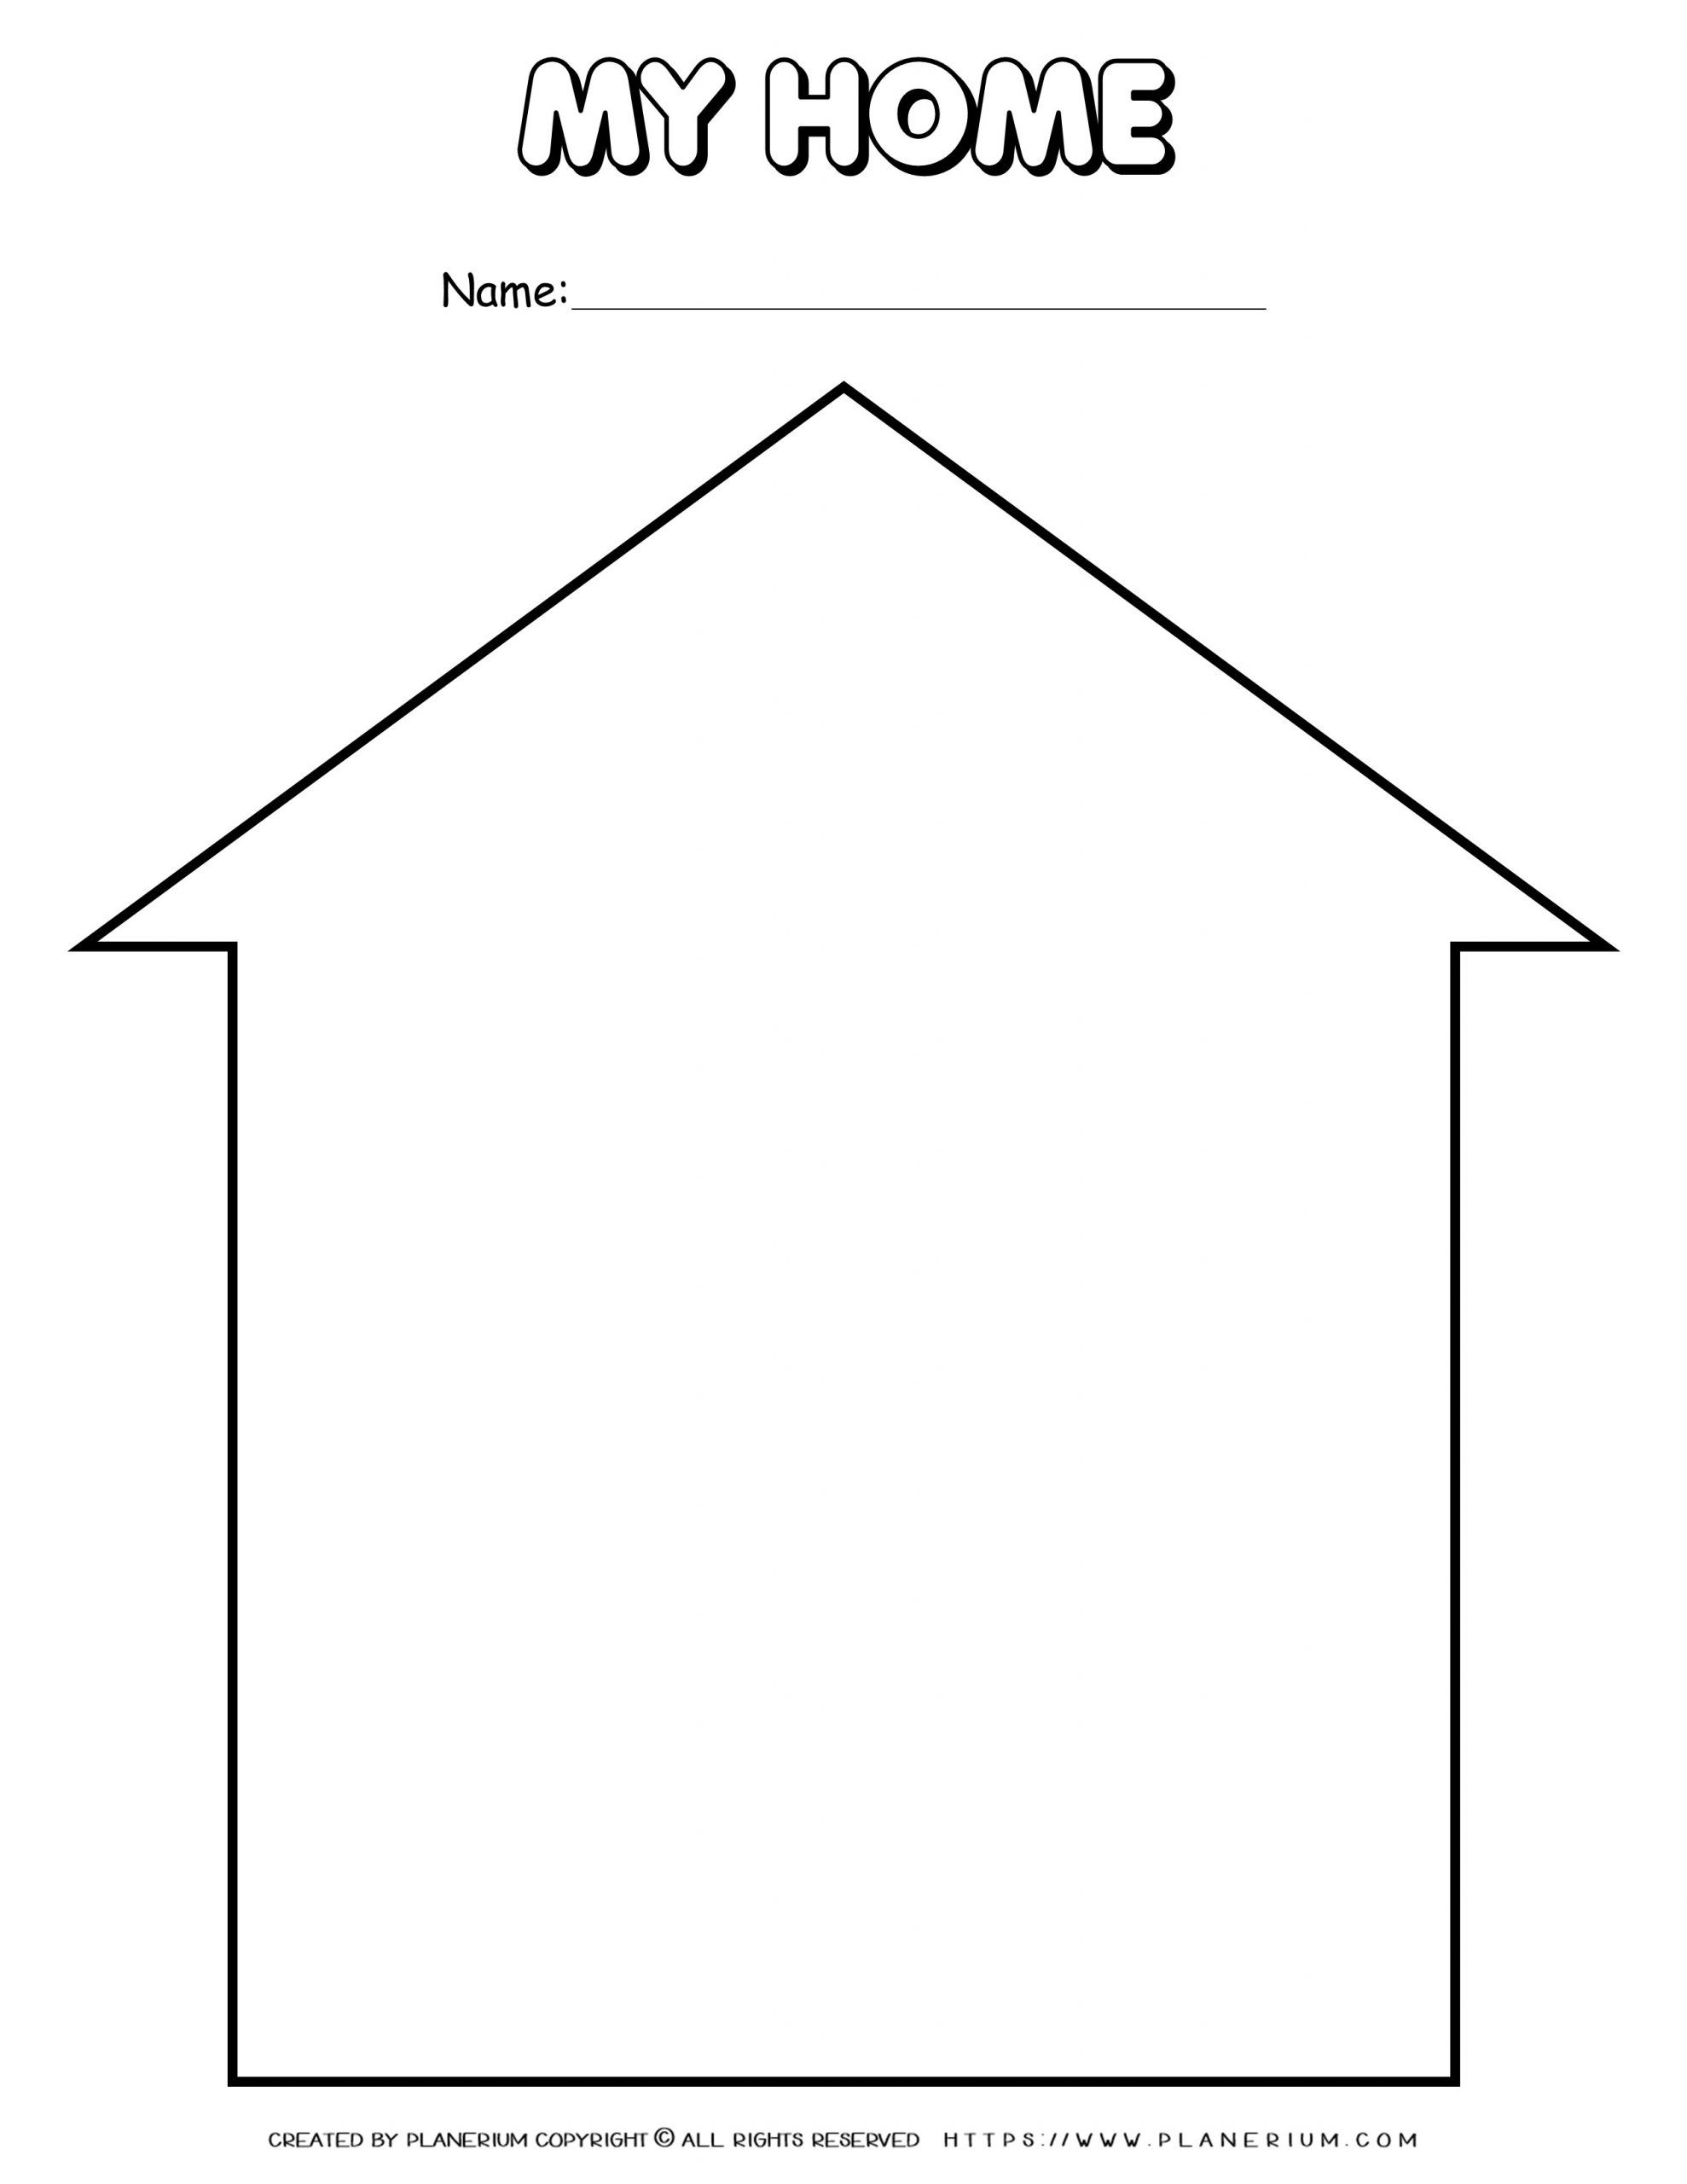 My Home Template Free Worksheets For Kids Worksheets For Kids Home Learning